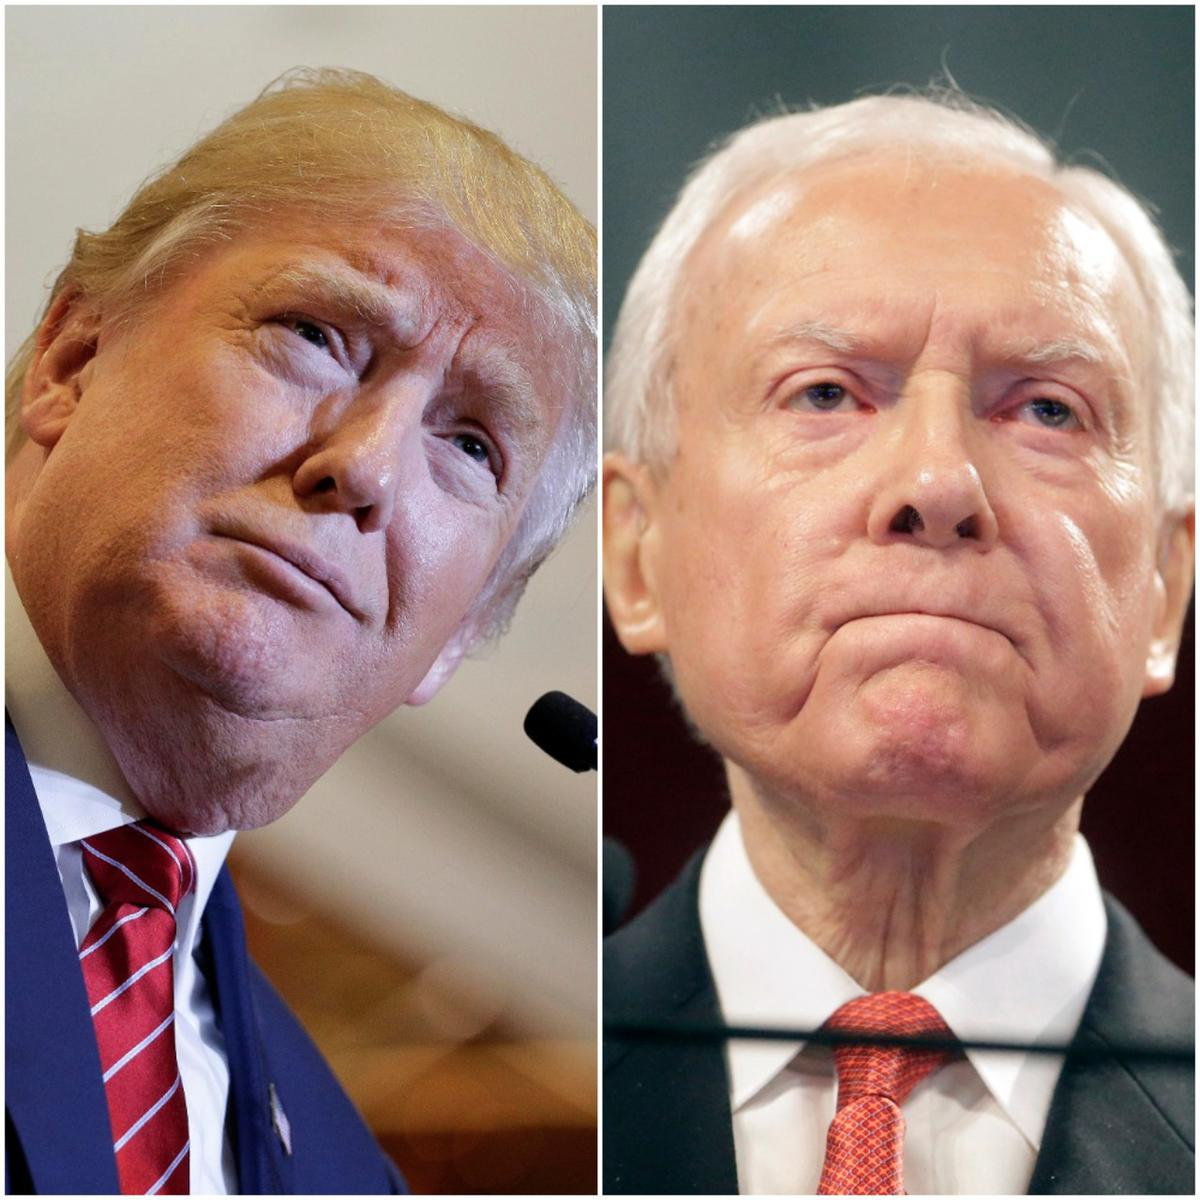 Sen. Orrin Hatch, R-Utah, said he will do what he can to help GOP presidential frontrunner Donald Trump's campaign.